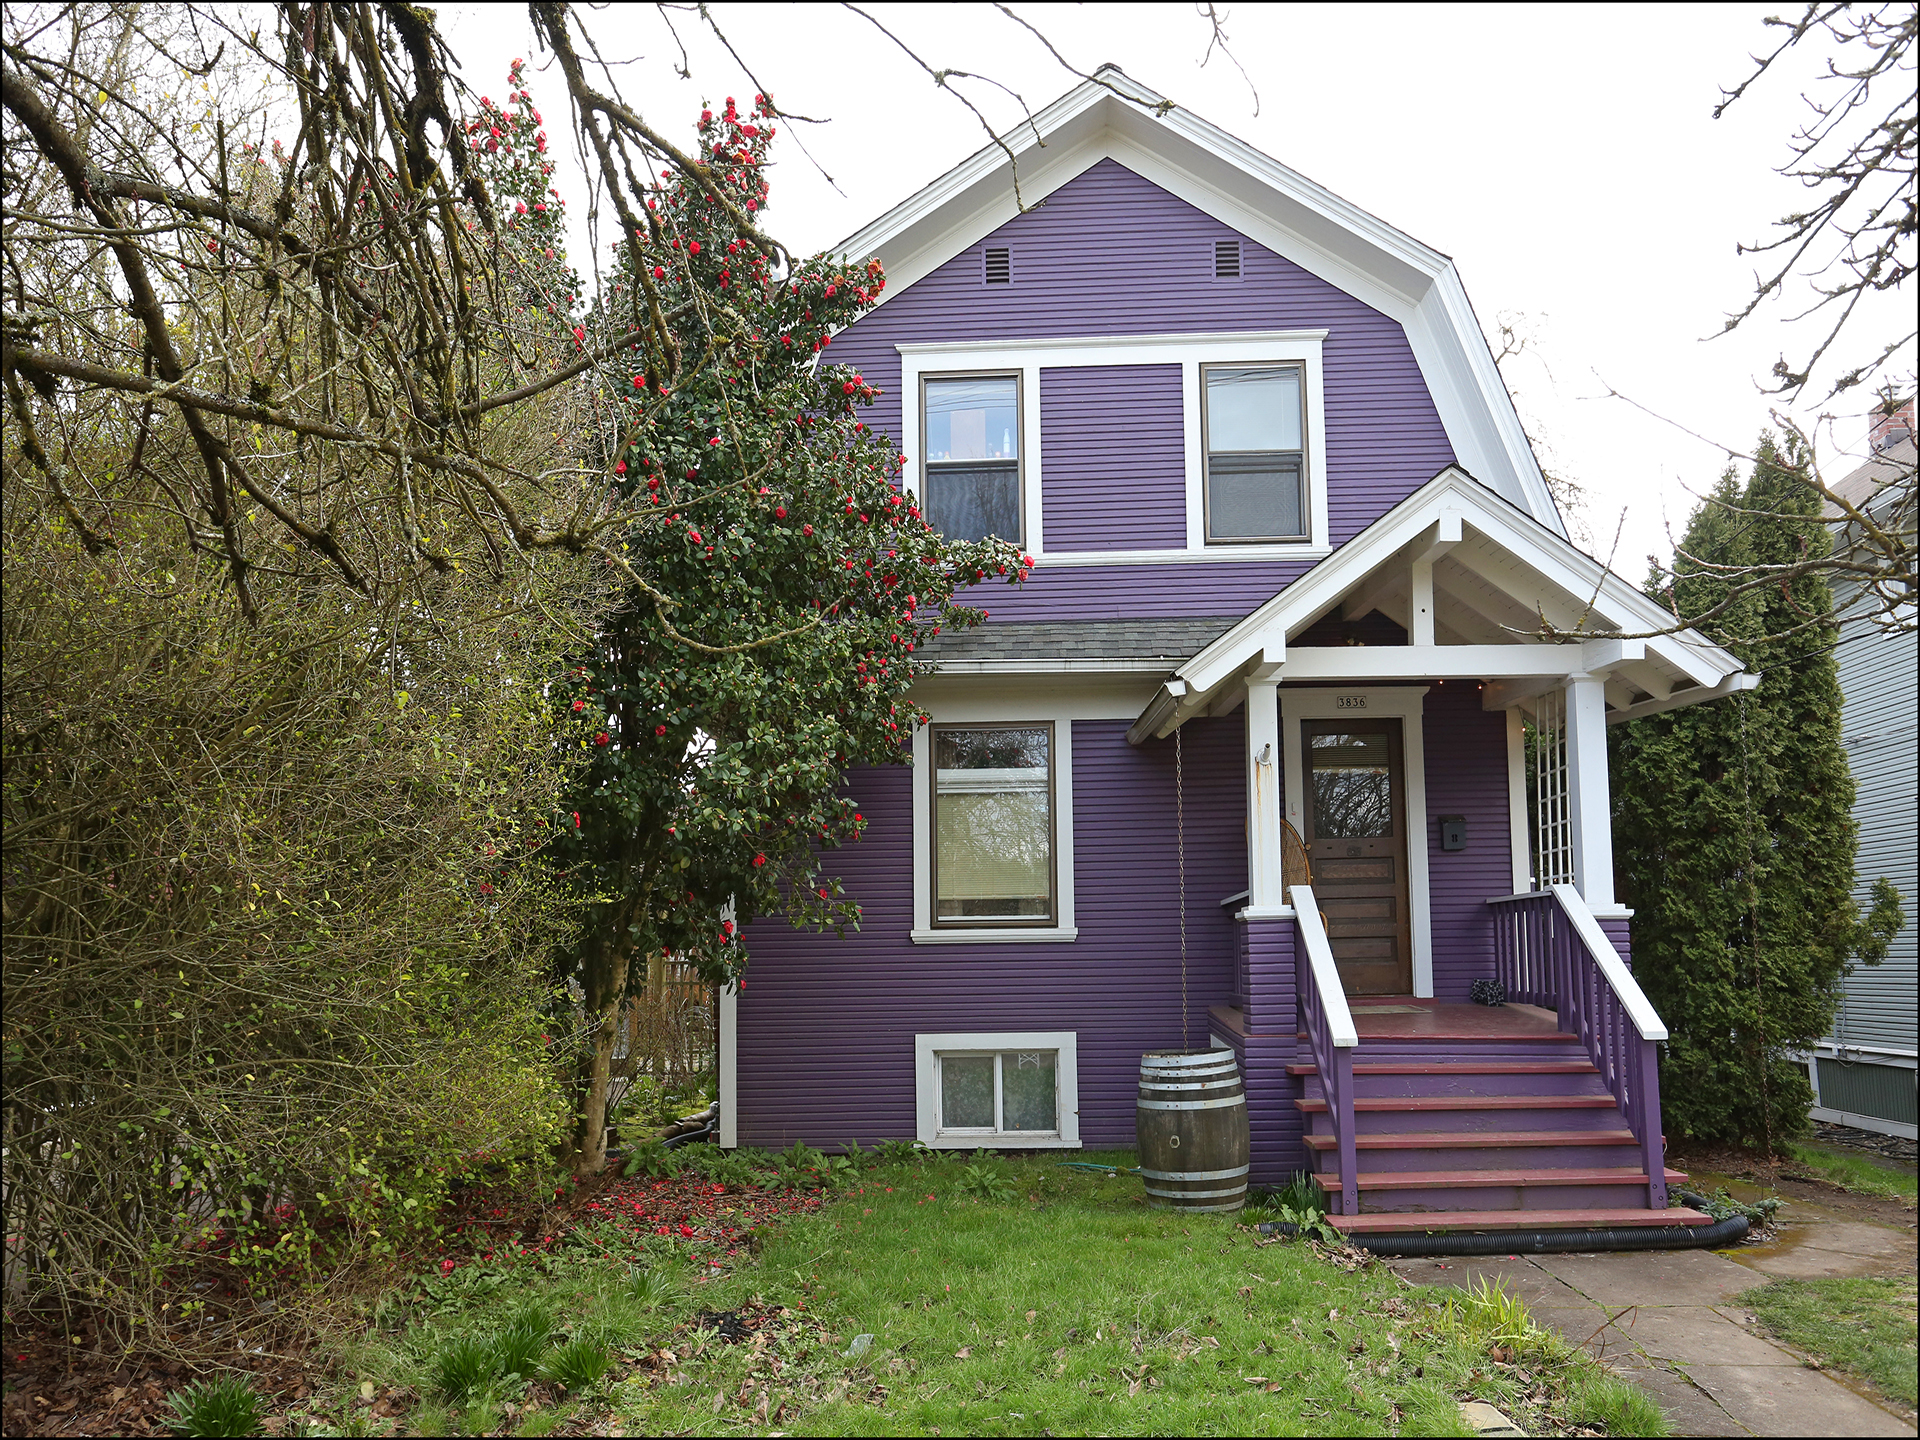 3836 SE Yamhill  - Great opportunity with this wonderful Dutch Colonial in Sunnyside!  $499,900 - SOLD!